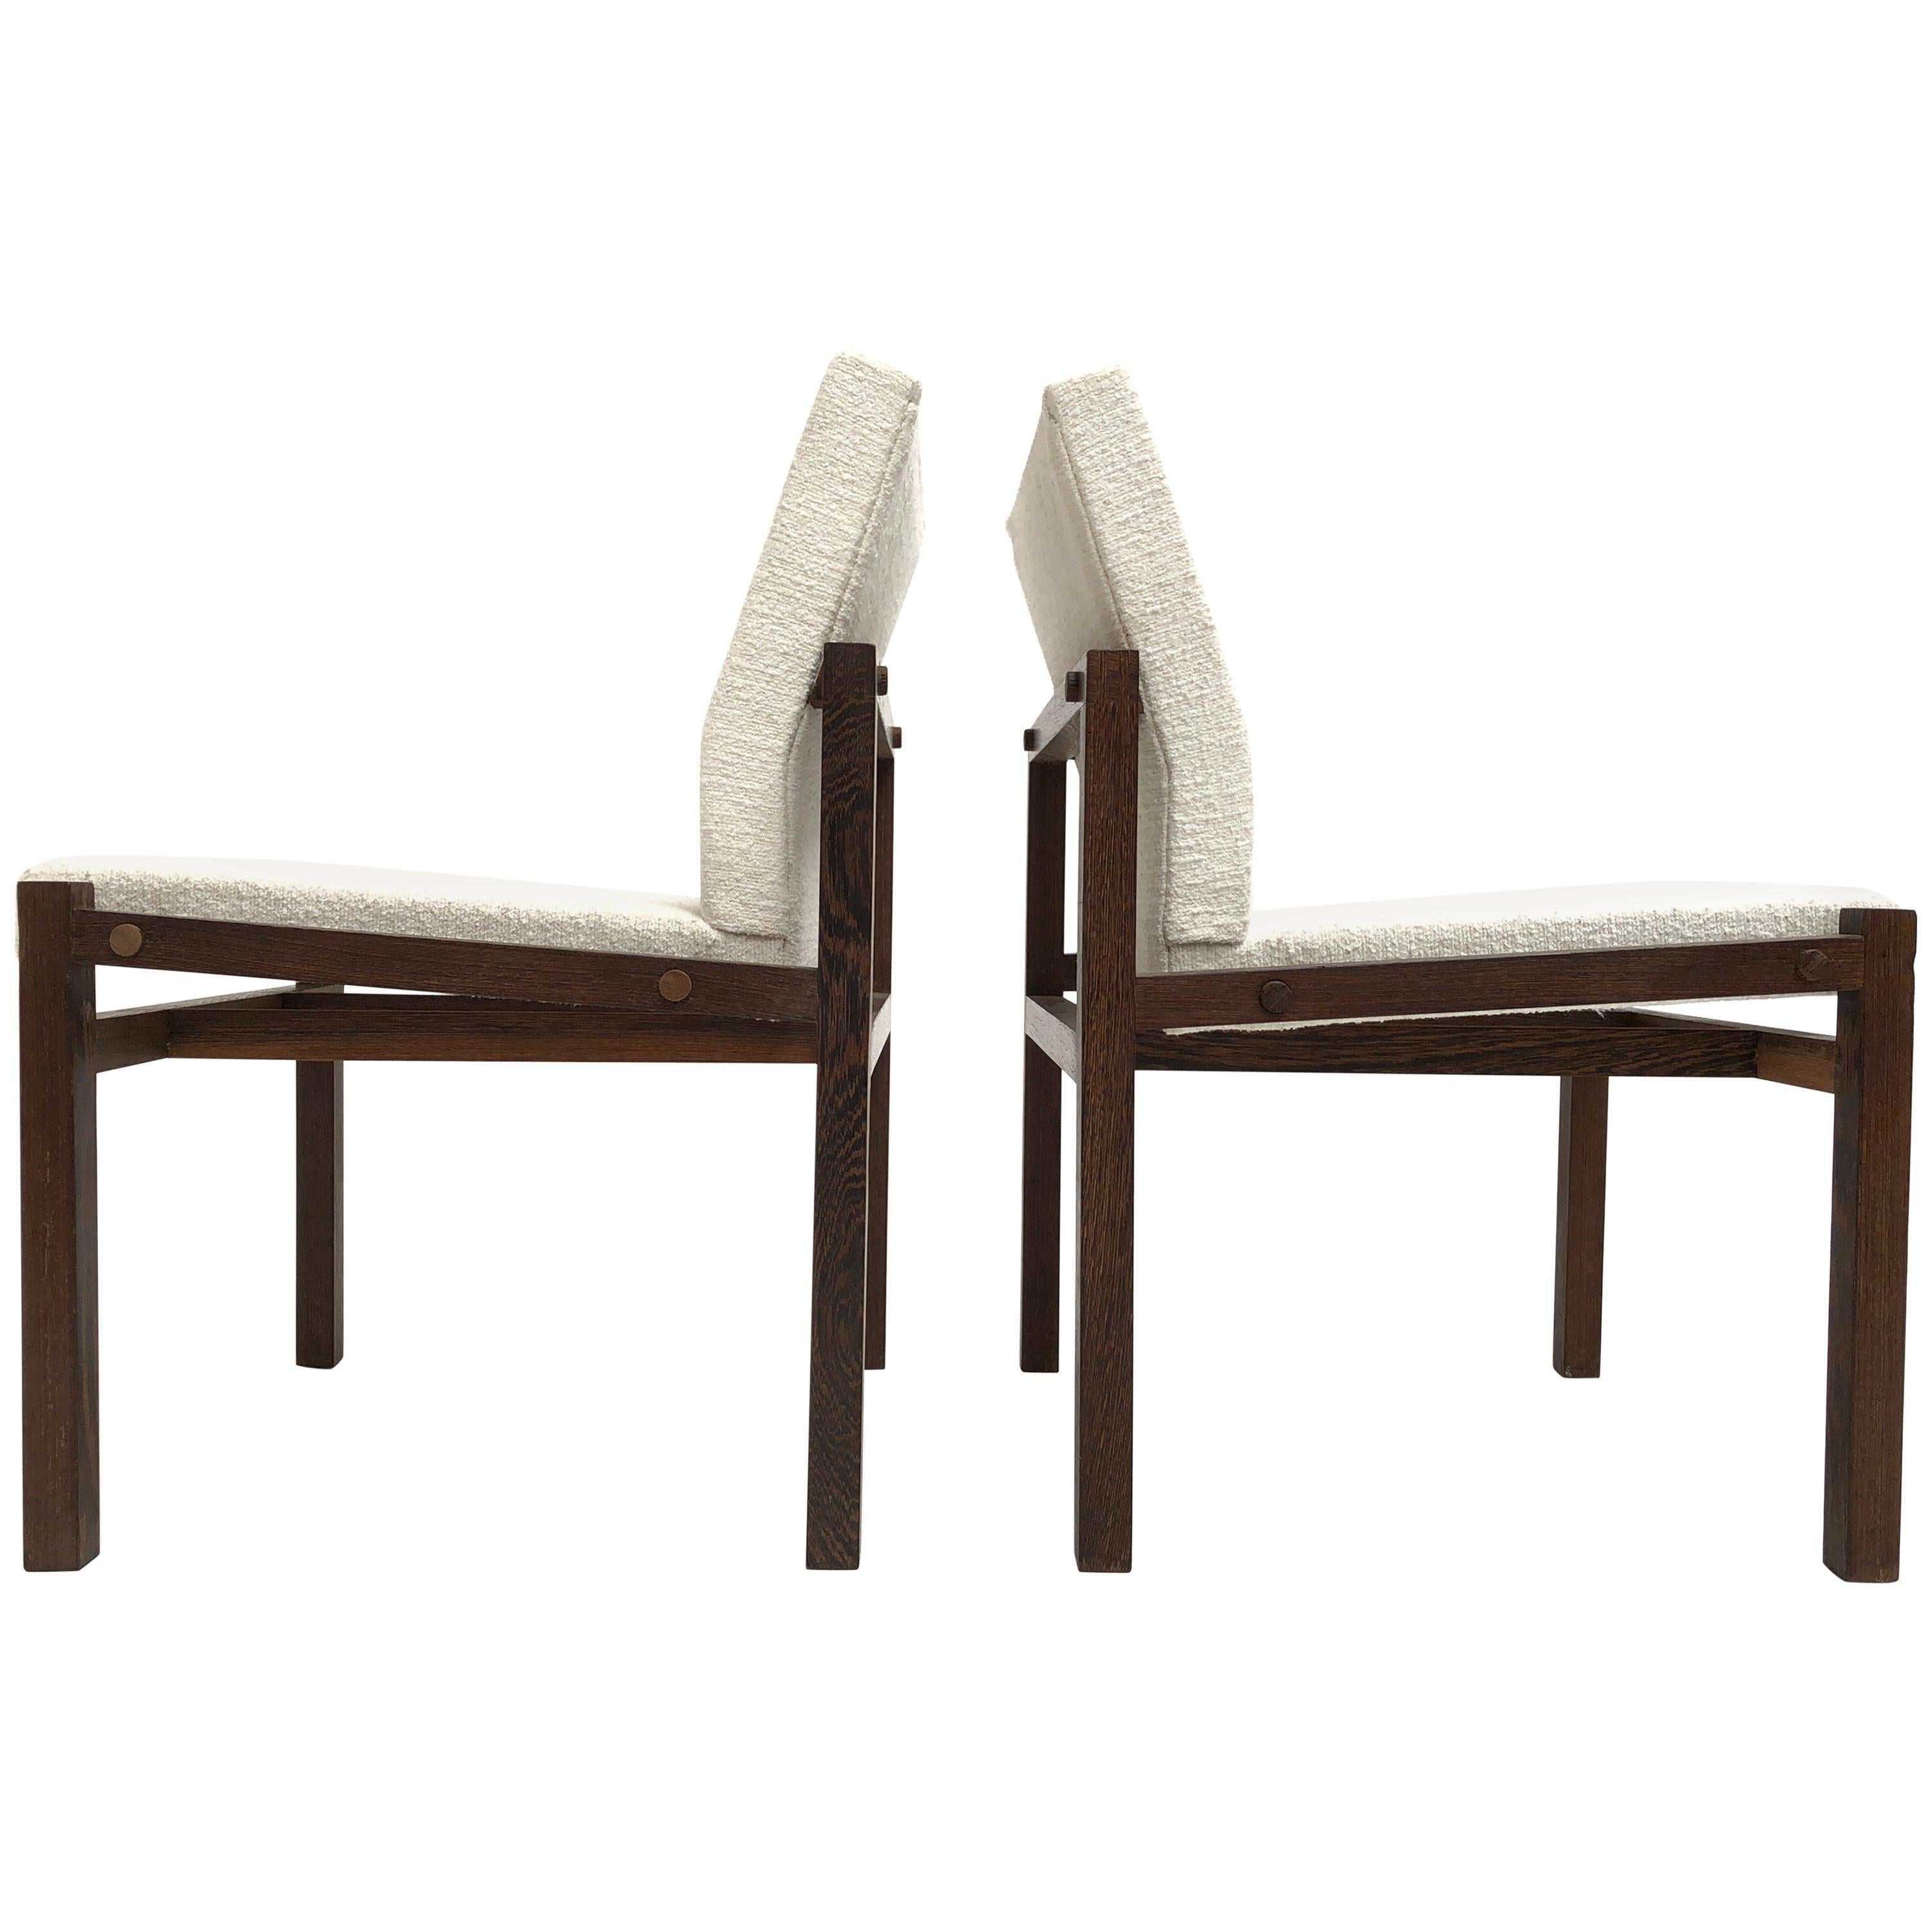 Dutch 1960s Lounge Chairs in Solid Wenge Wood and New Pure Wool Upholstery